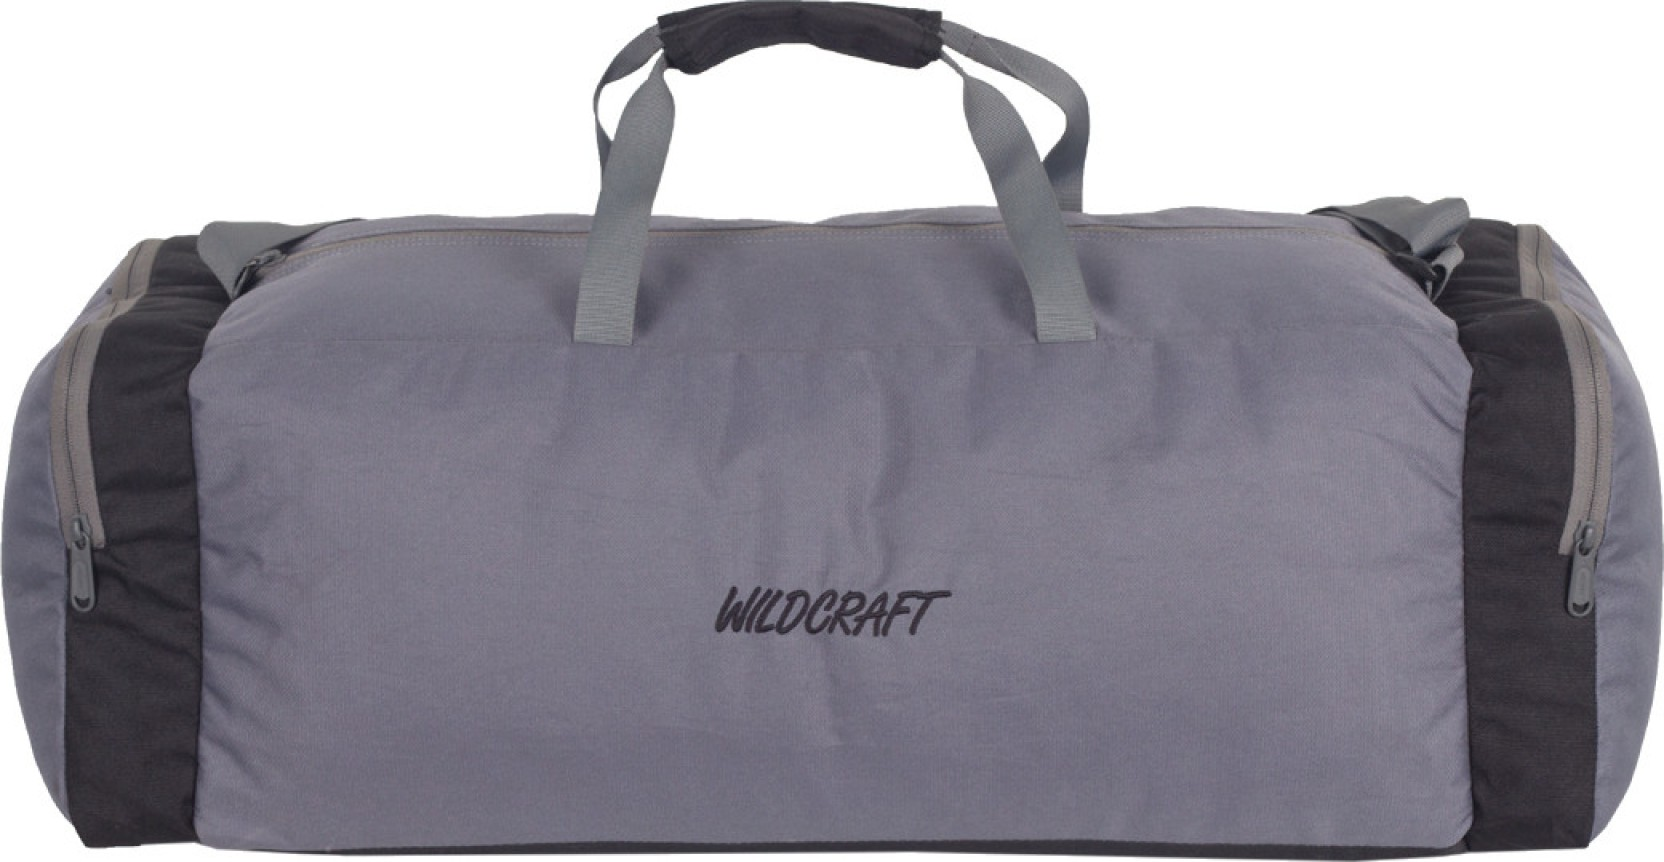 Wildcraft Power 22 Inch 55 Cm Travel Duffel Bag Grey Price In India Flipkart Com